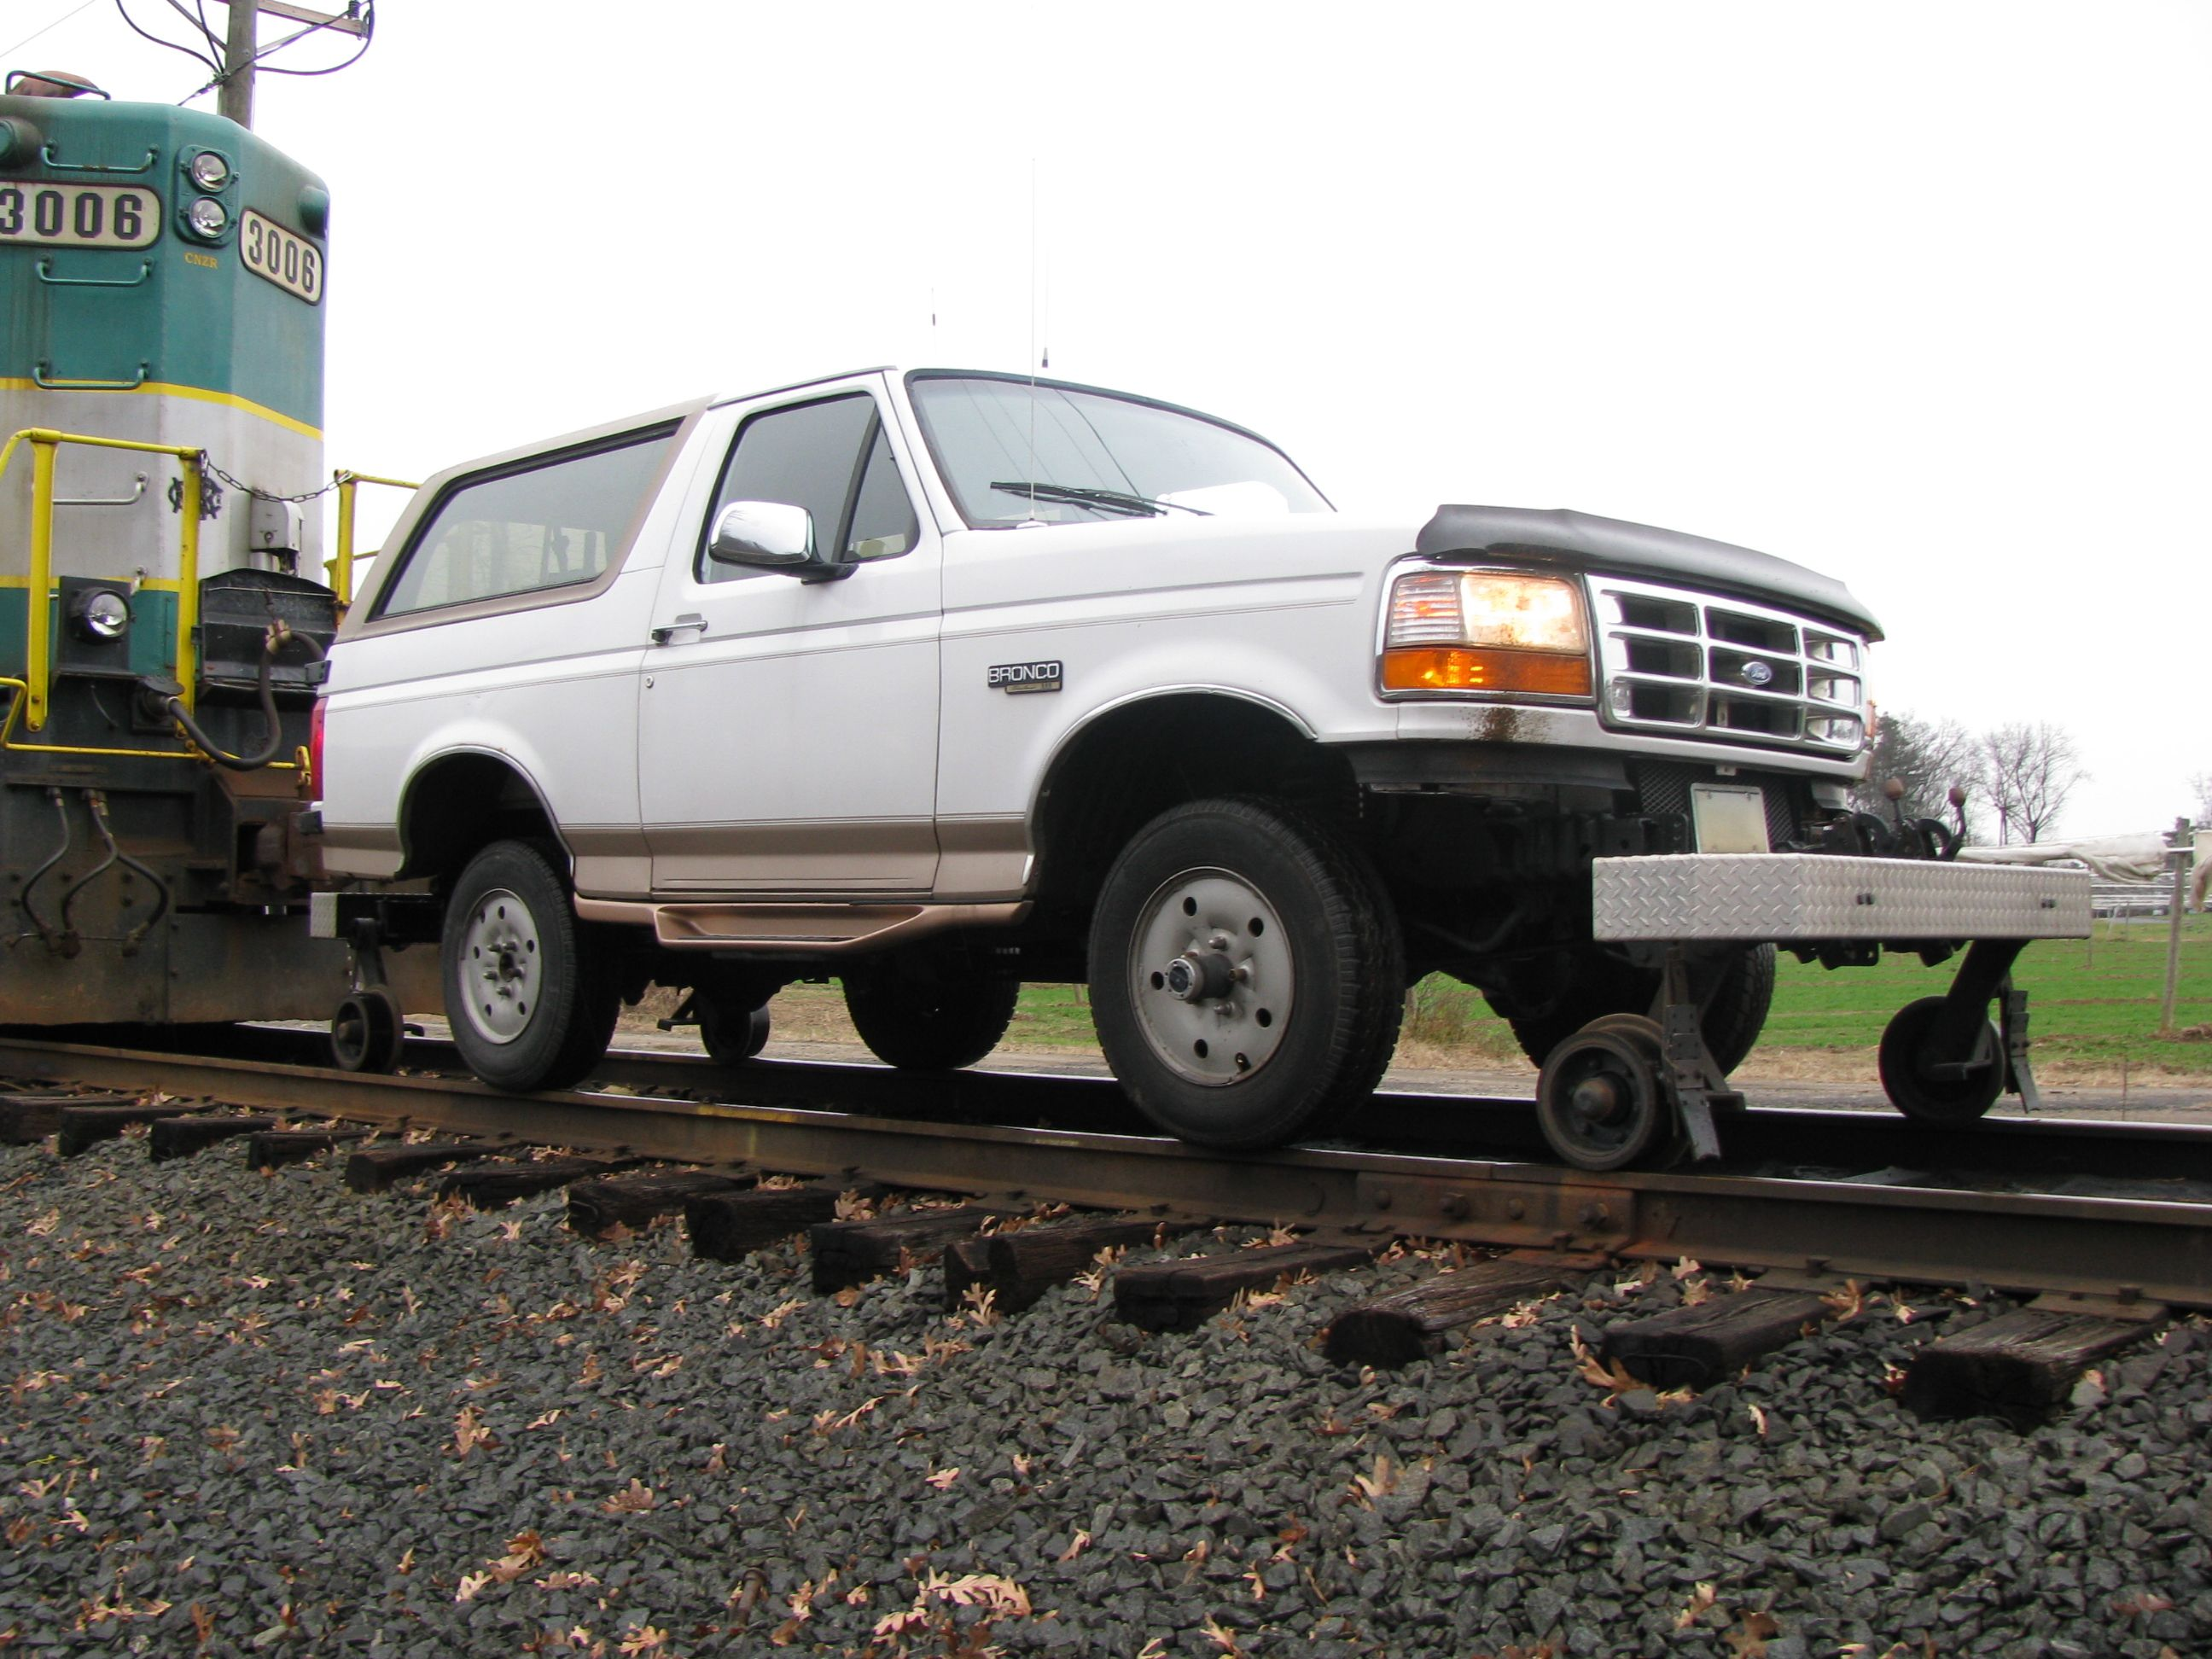 This Is My 96 Ed Bauer Ford Bronco Hyrail On The Track In Front Of Central New England Railroad Engine 3006 Dayhill Rd Bloomfield Ct December 5